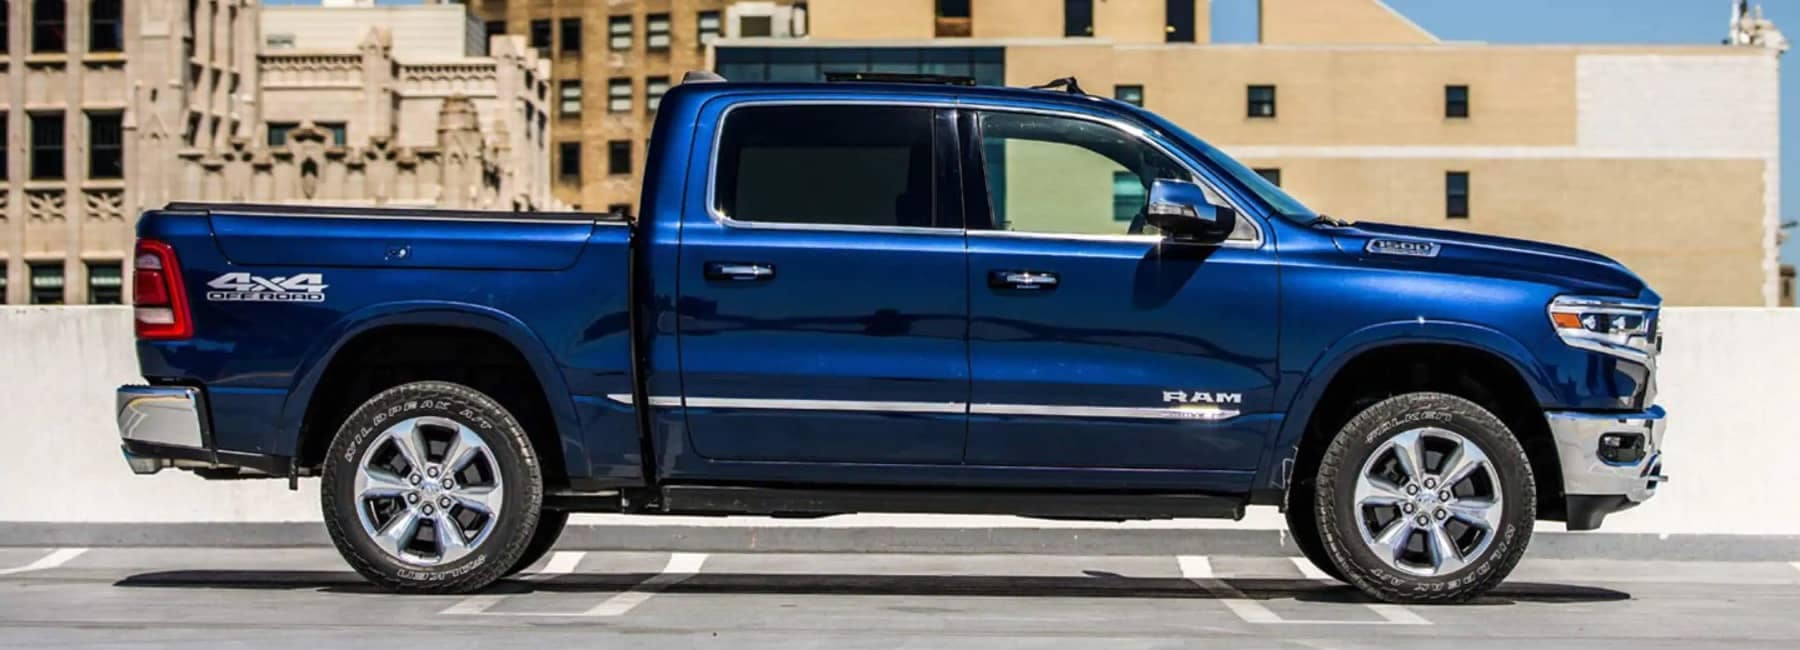 Ram 1500 Limited in blue sideview